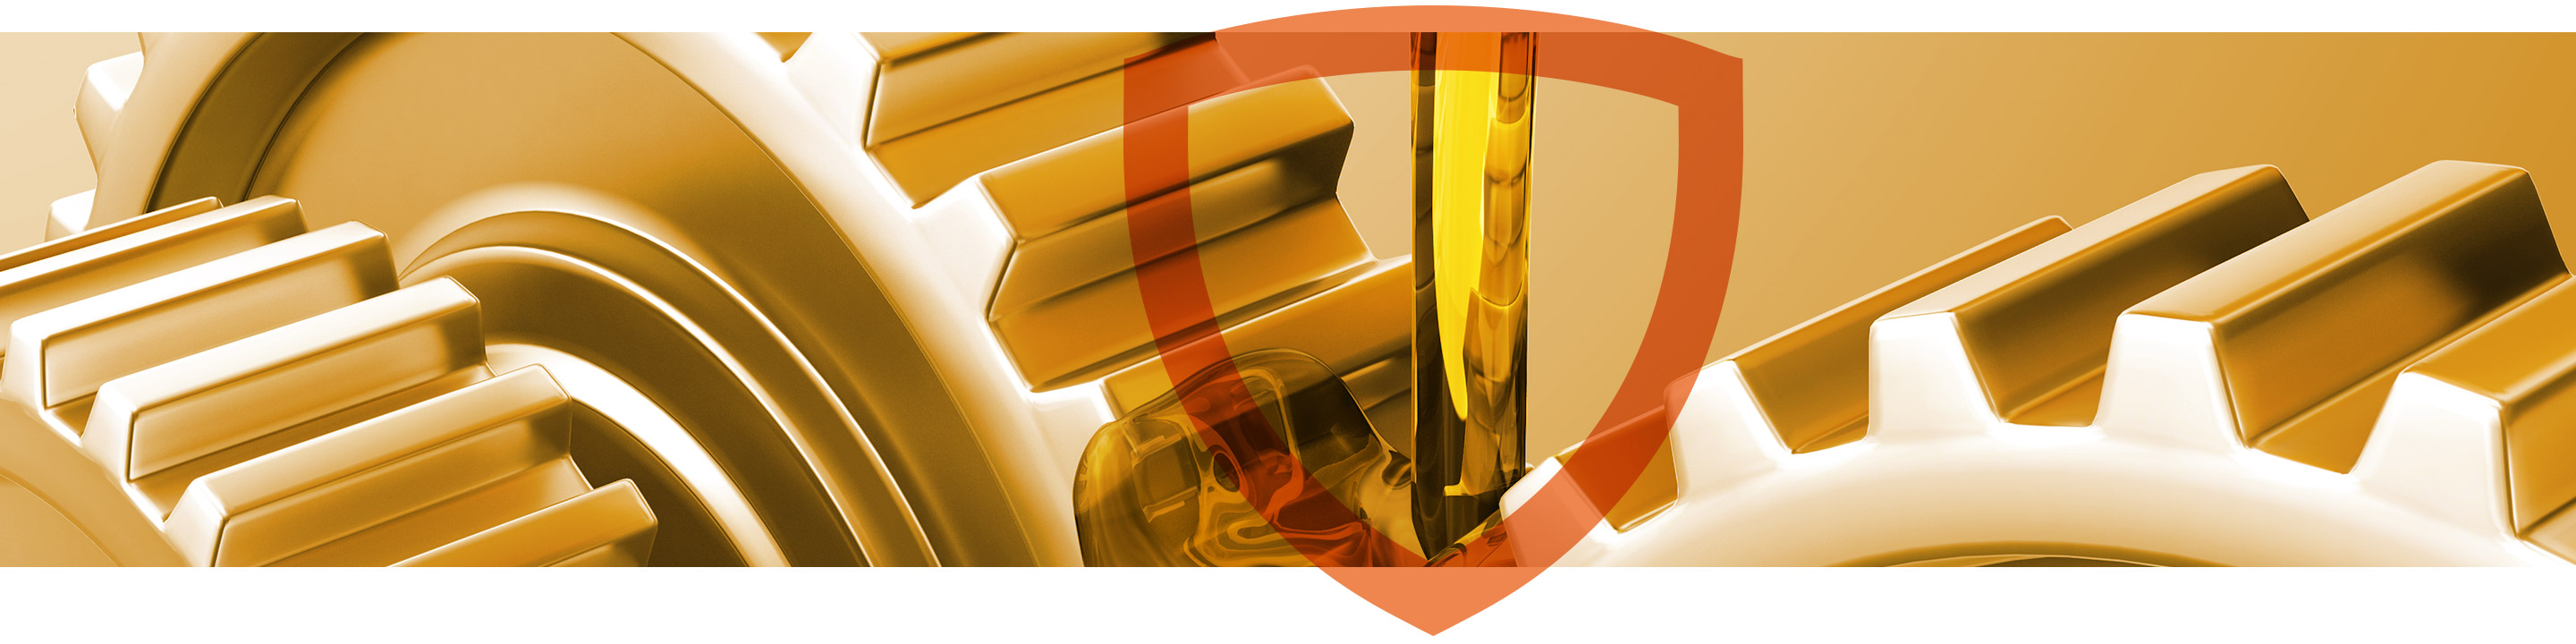 Gear Oils Product Header Image